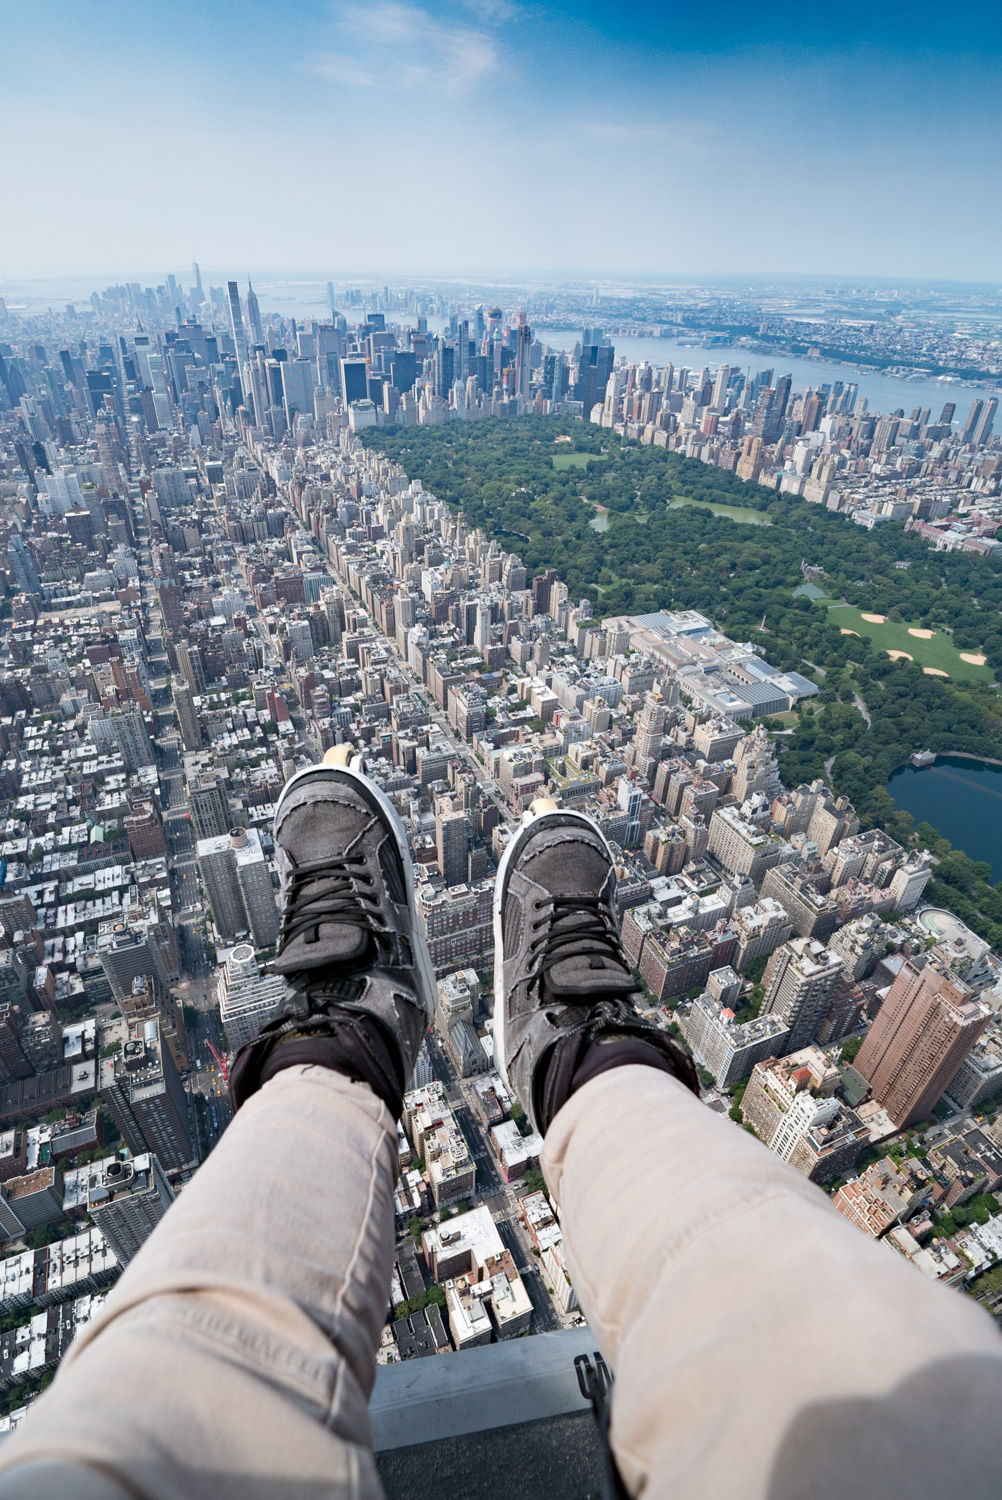 Brought my blades with me 1,500ft above NYC!